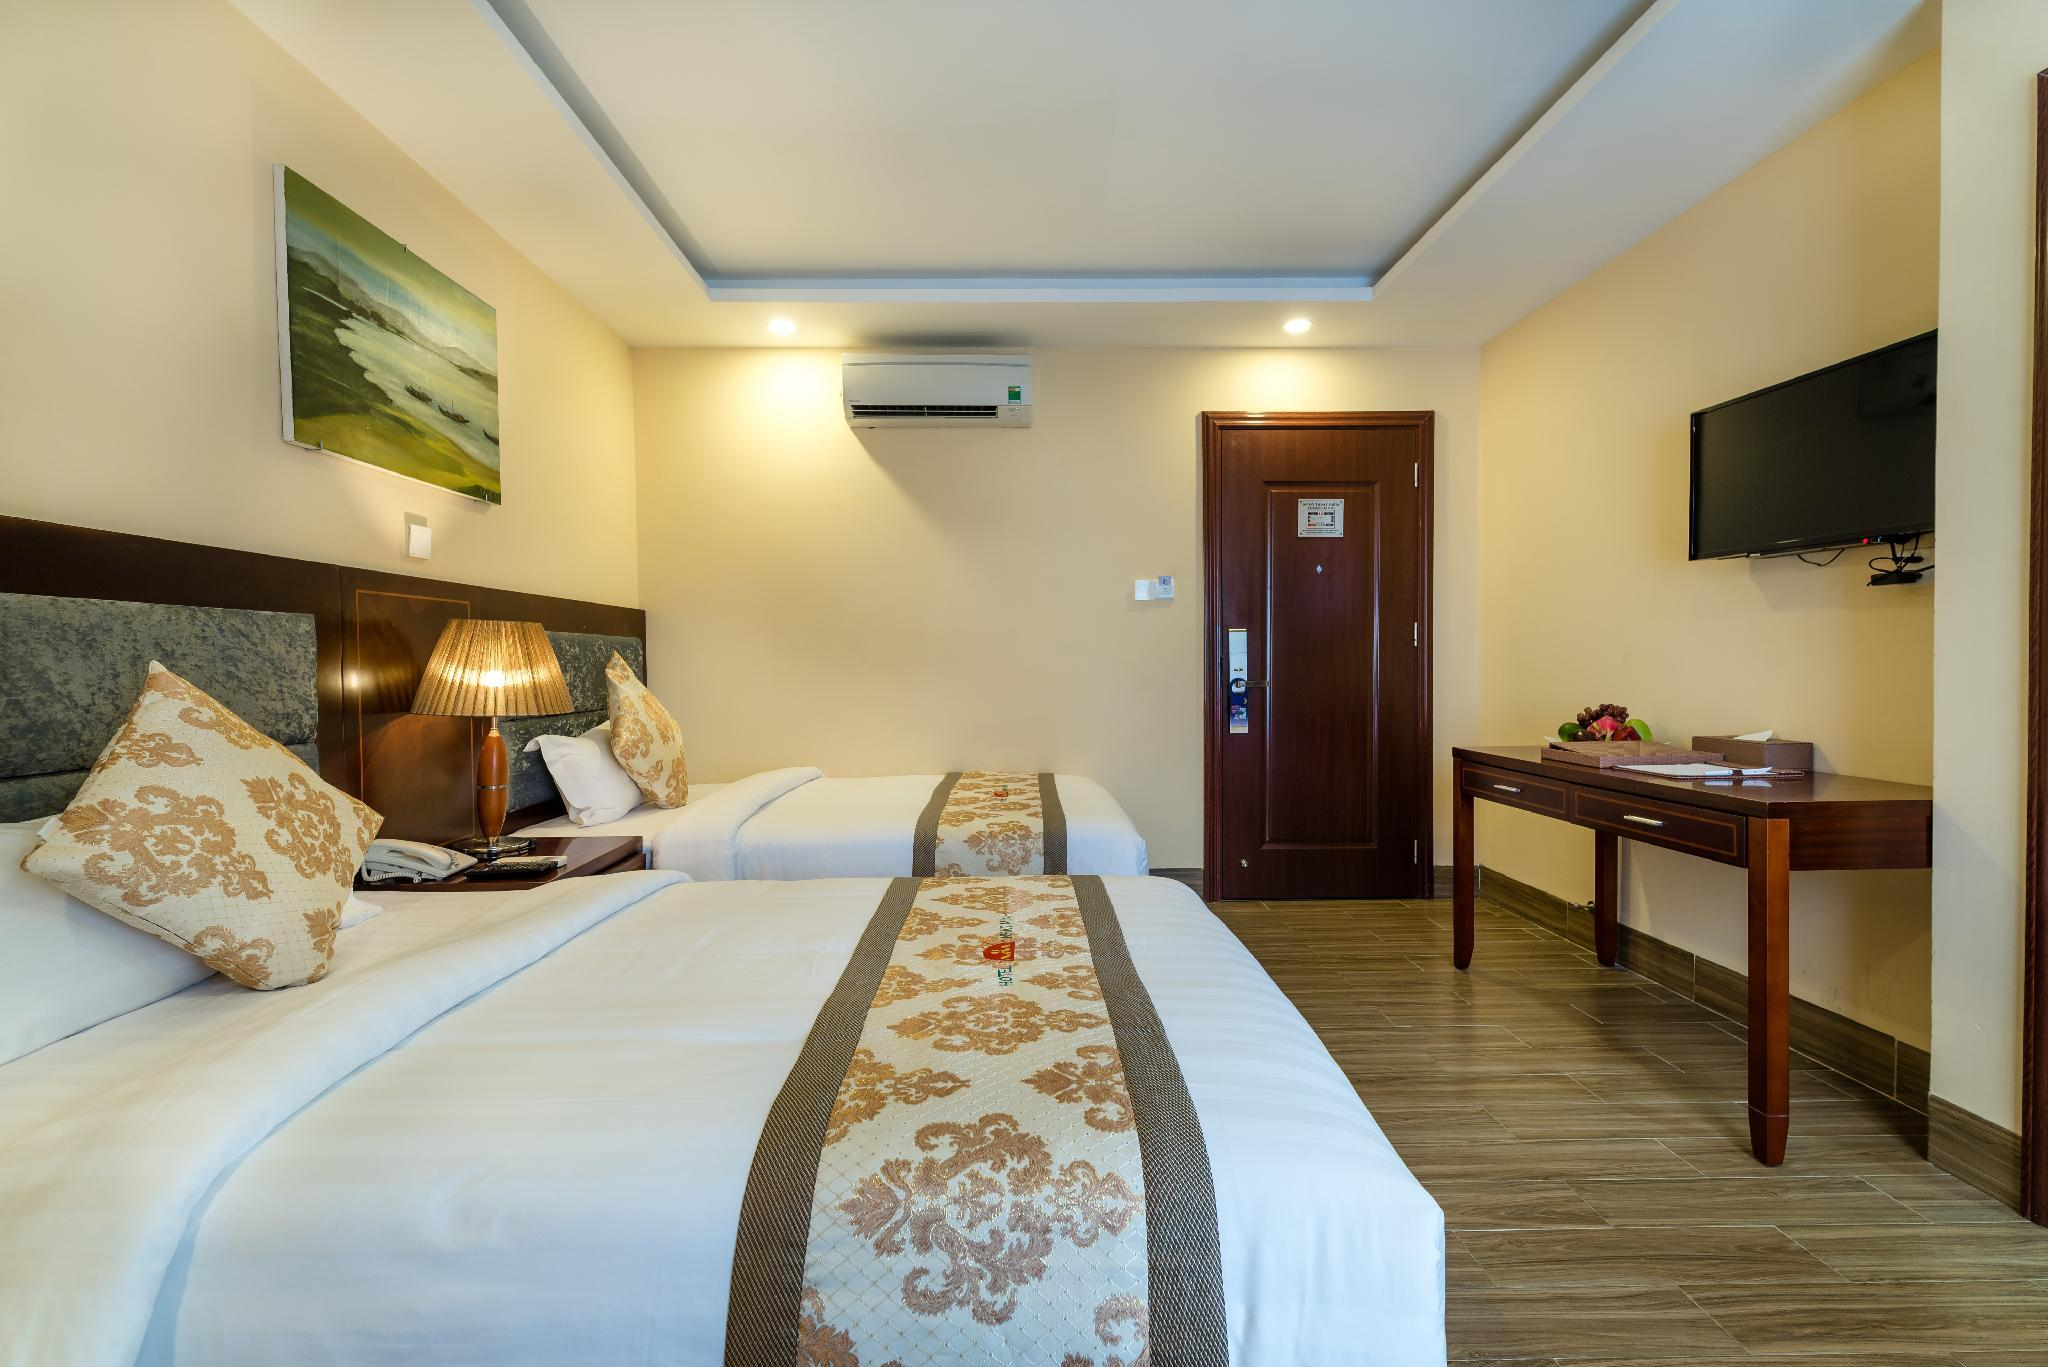 Book Nhat Minh Hotel And Apartment In Da Nang Vietnam